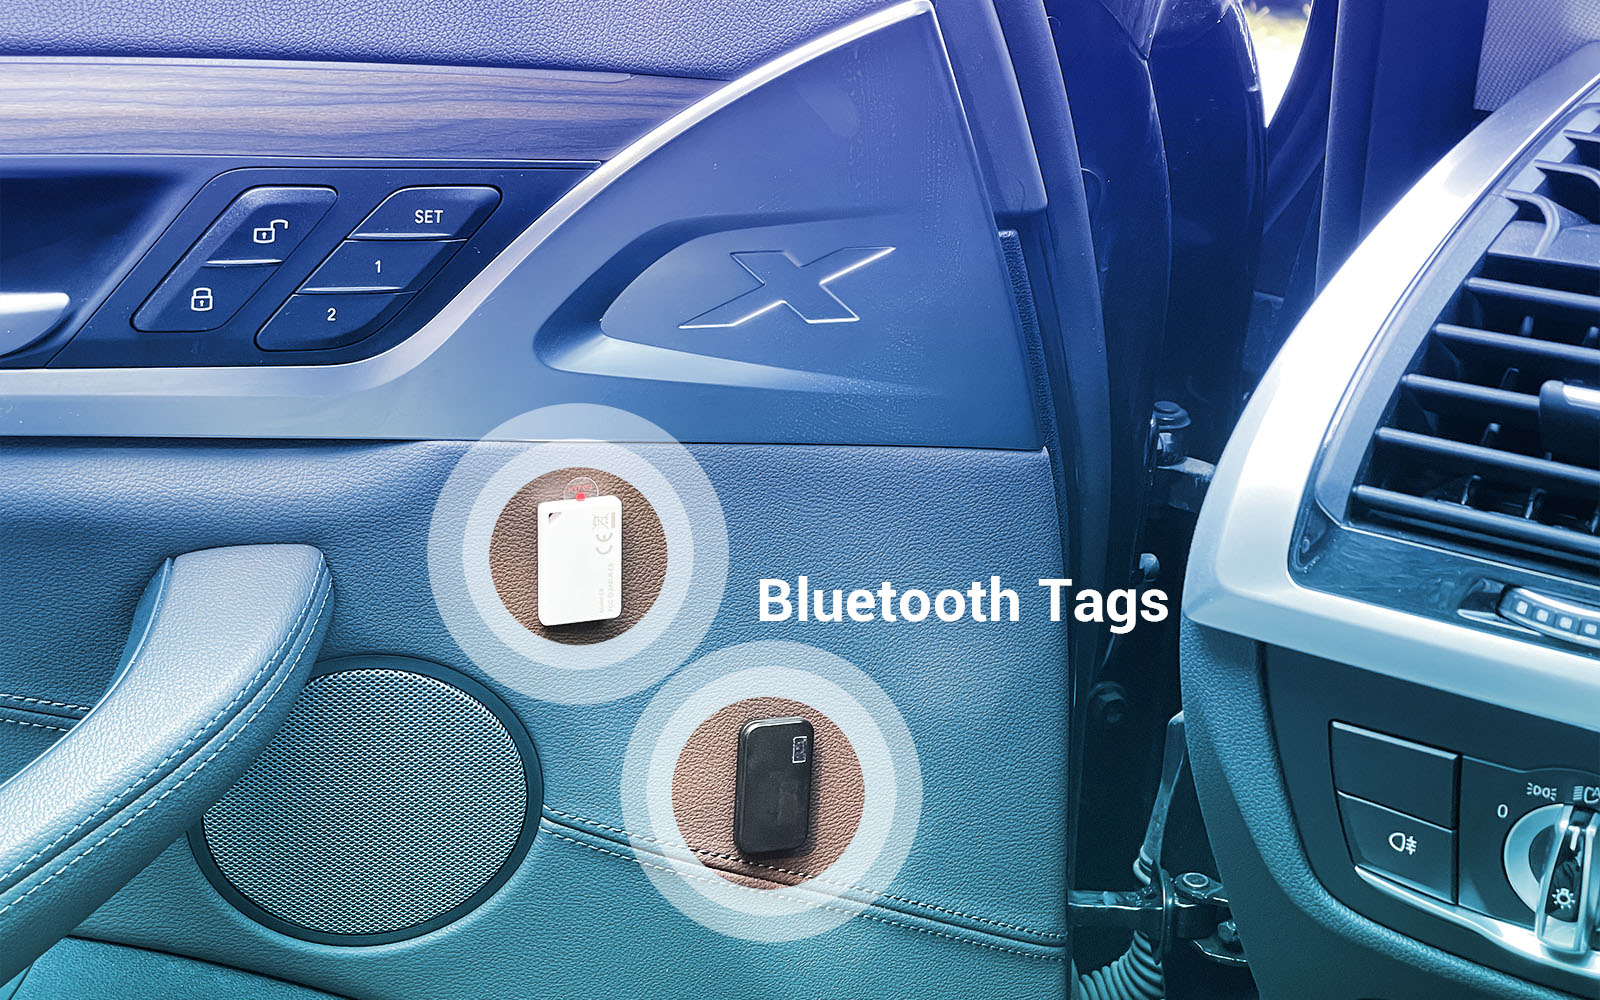 Install a Bluetooth Beacon in the car